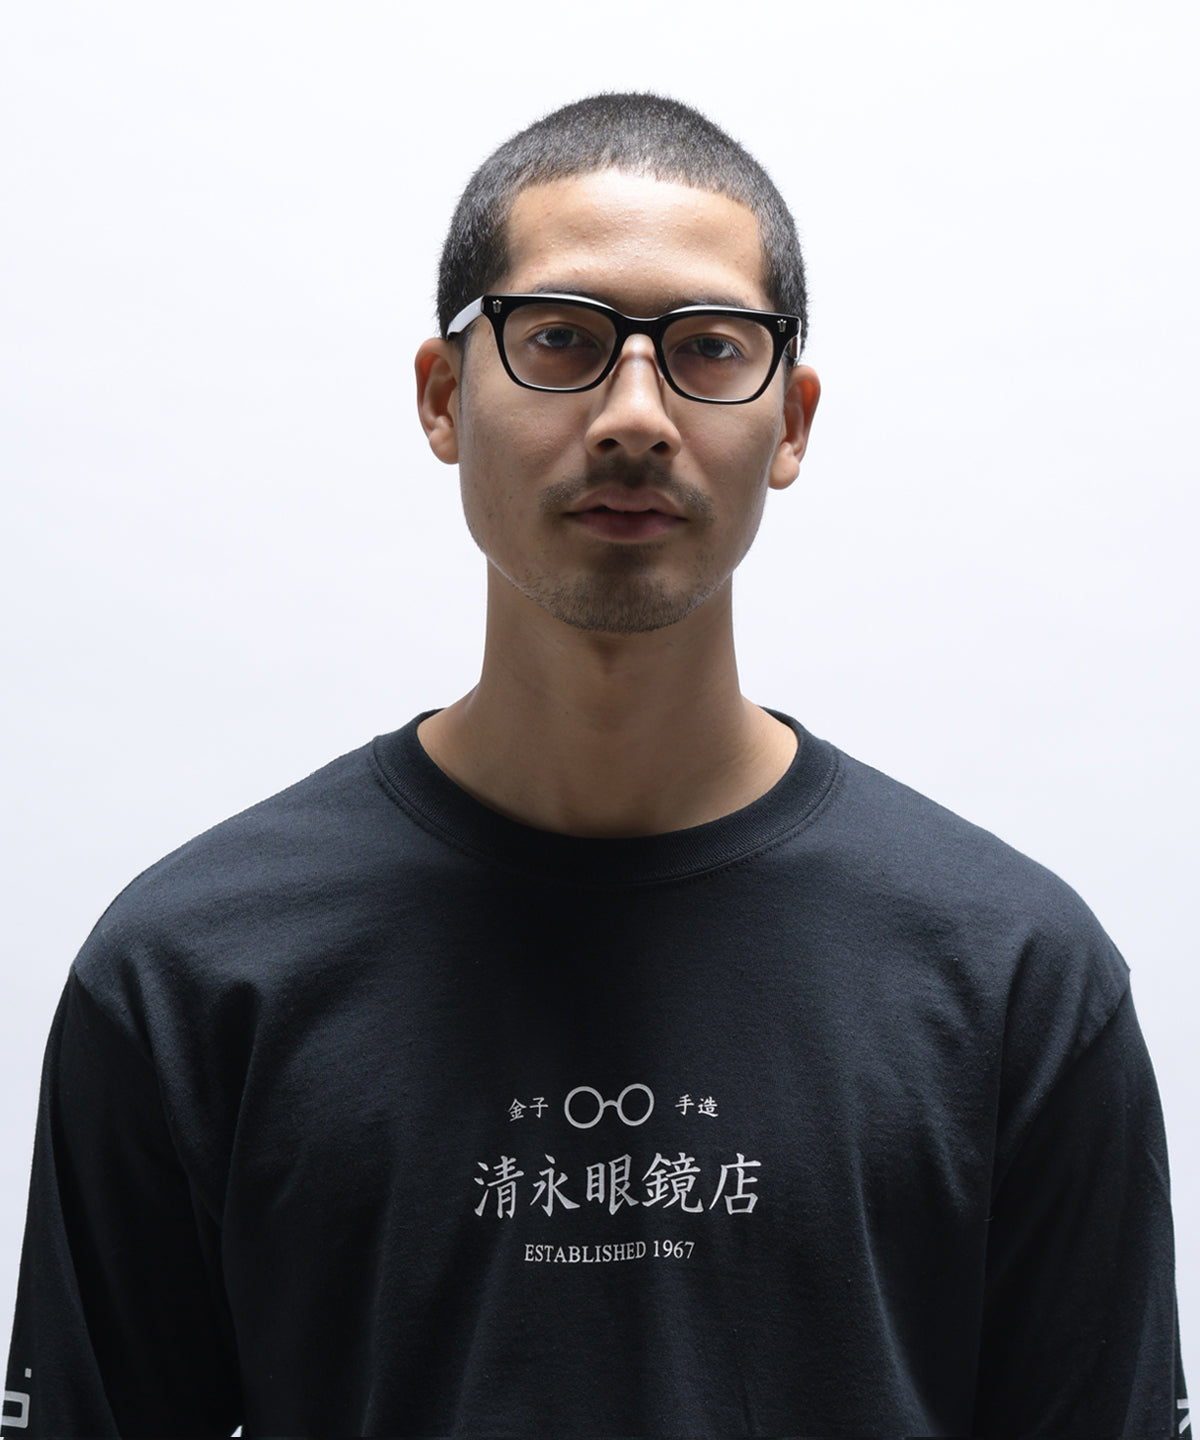 清永眼鏡店 泰八郎謹製 LIGHT WEIGHT GLASSES